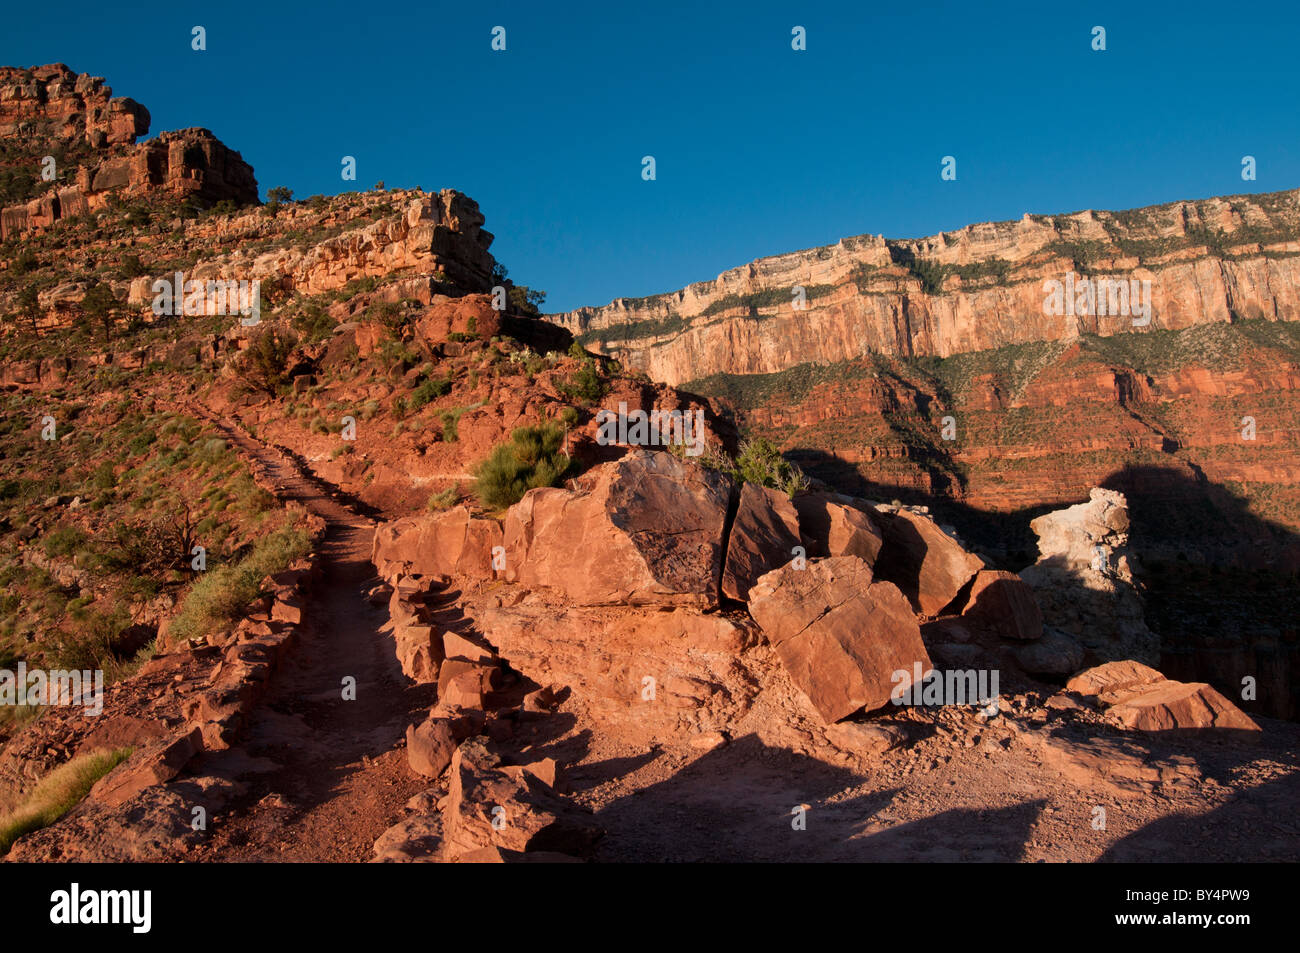 The South Kaibab Trail in Grand Canyon National Park as it approaches the south rim - Stock Image